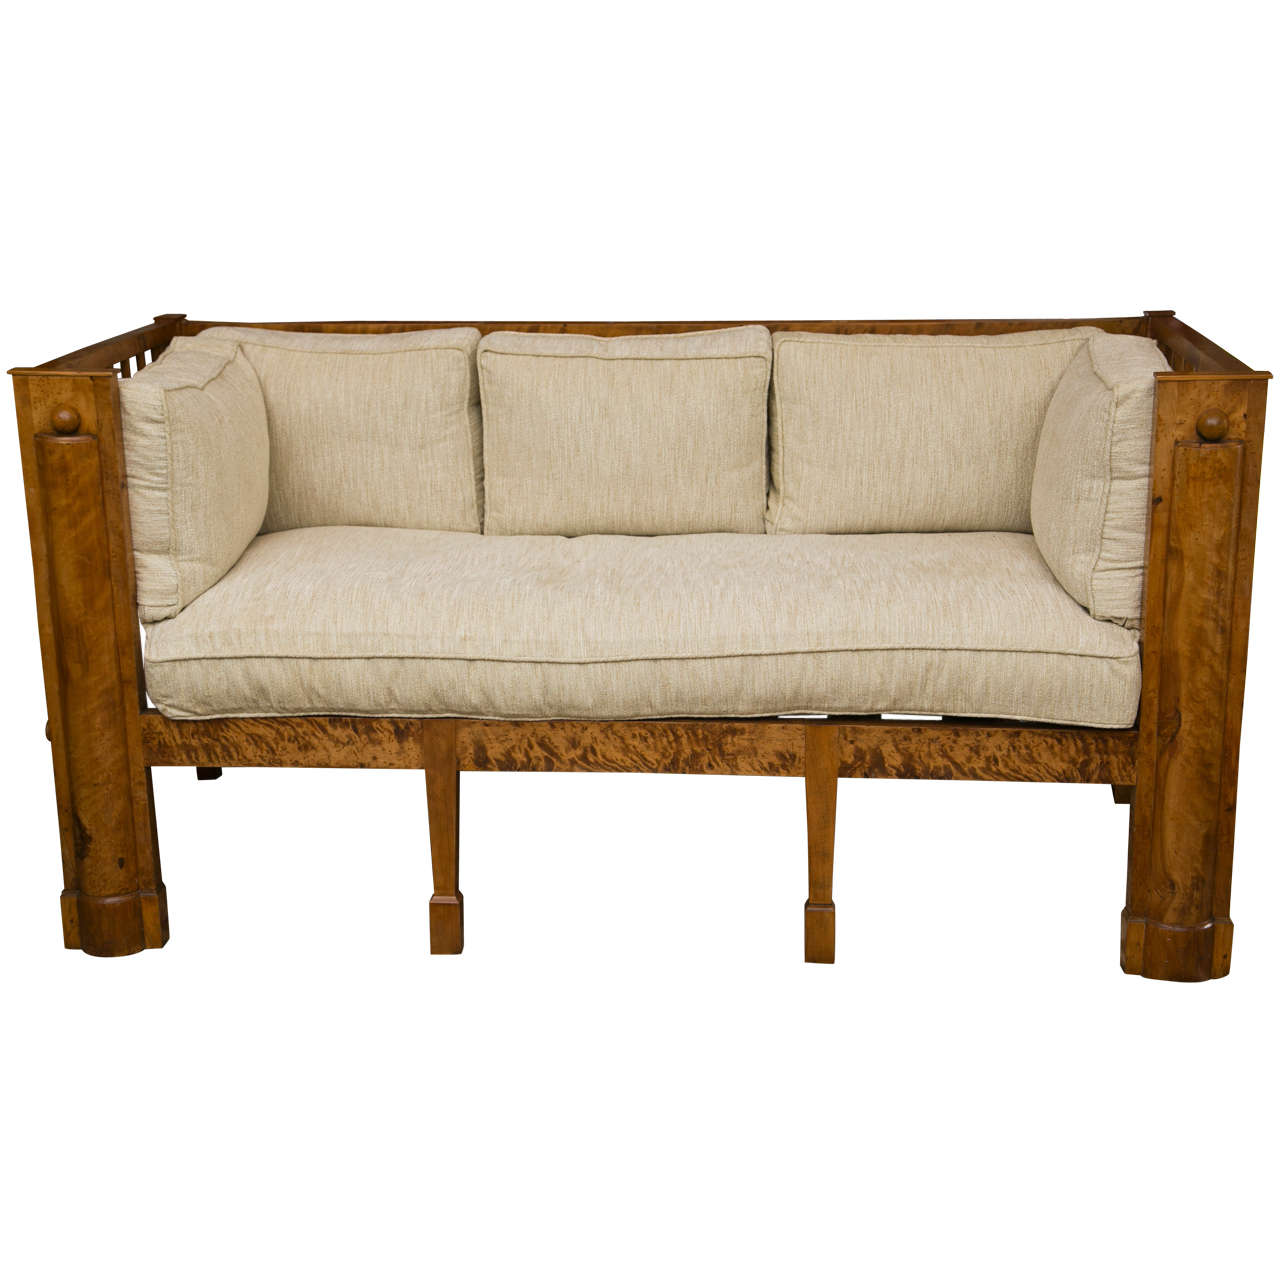 Stately tiger maple biedermeier sofa for sale at 1stdibs Biedermeier sofa